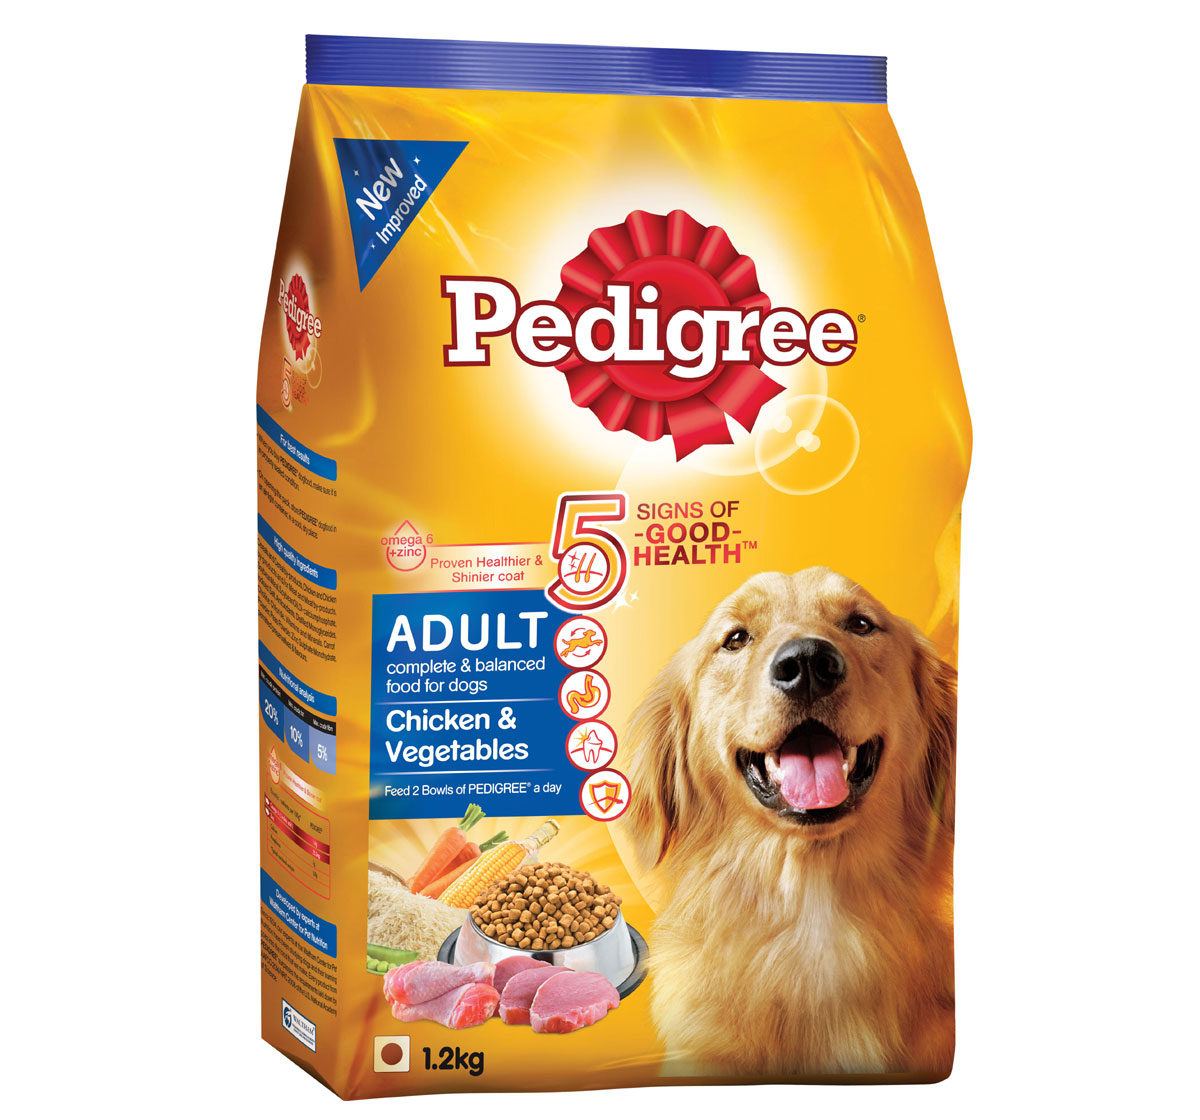 How To Cook Pedigree Dog Food